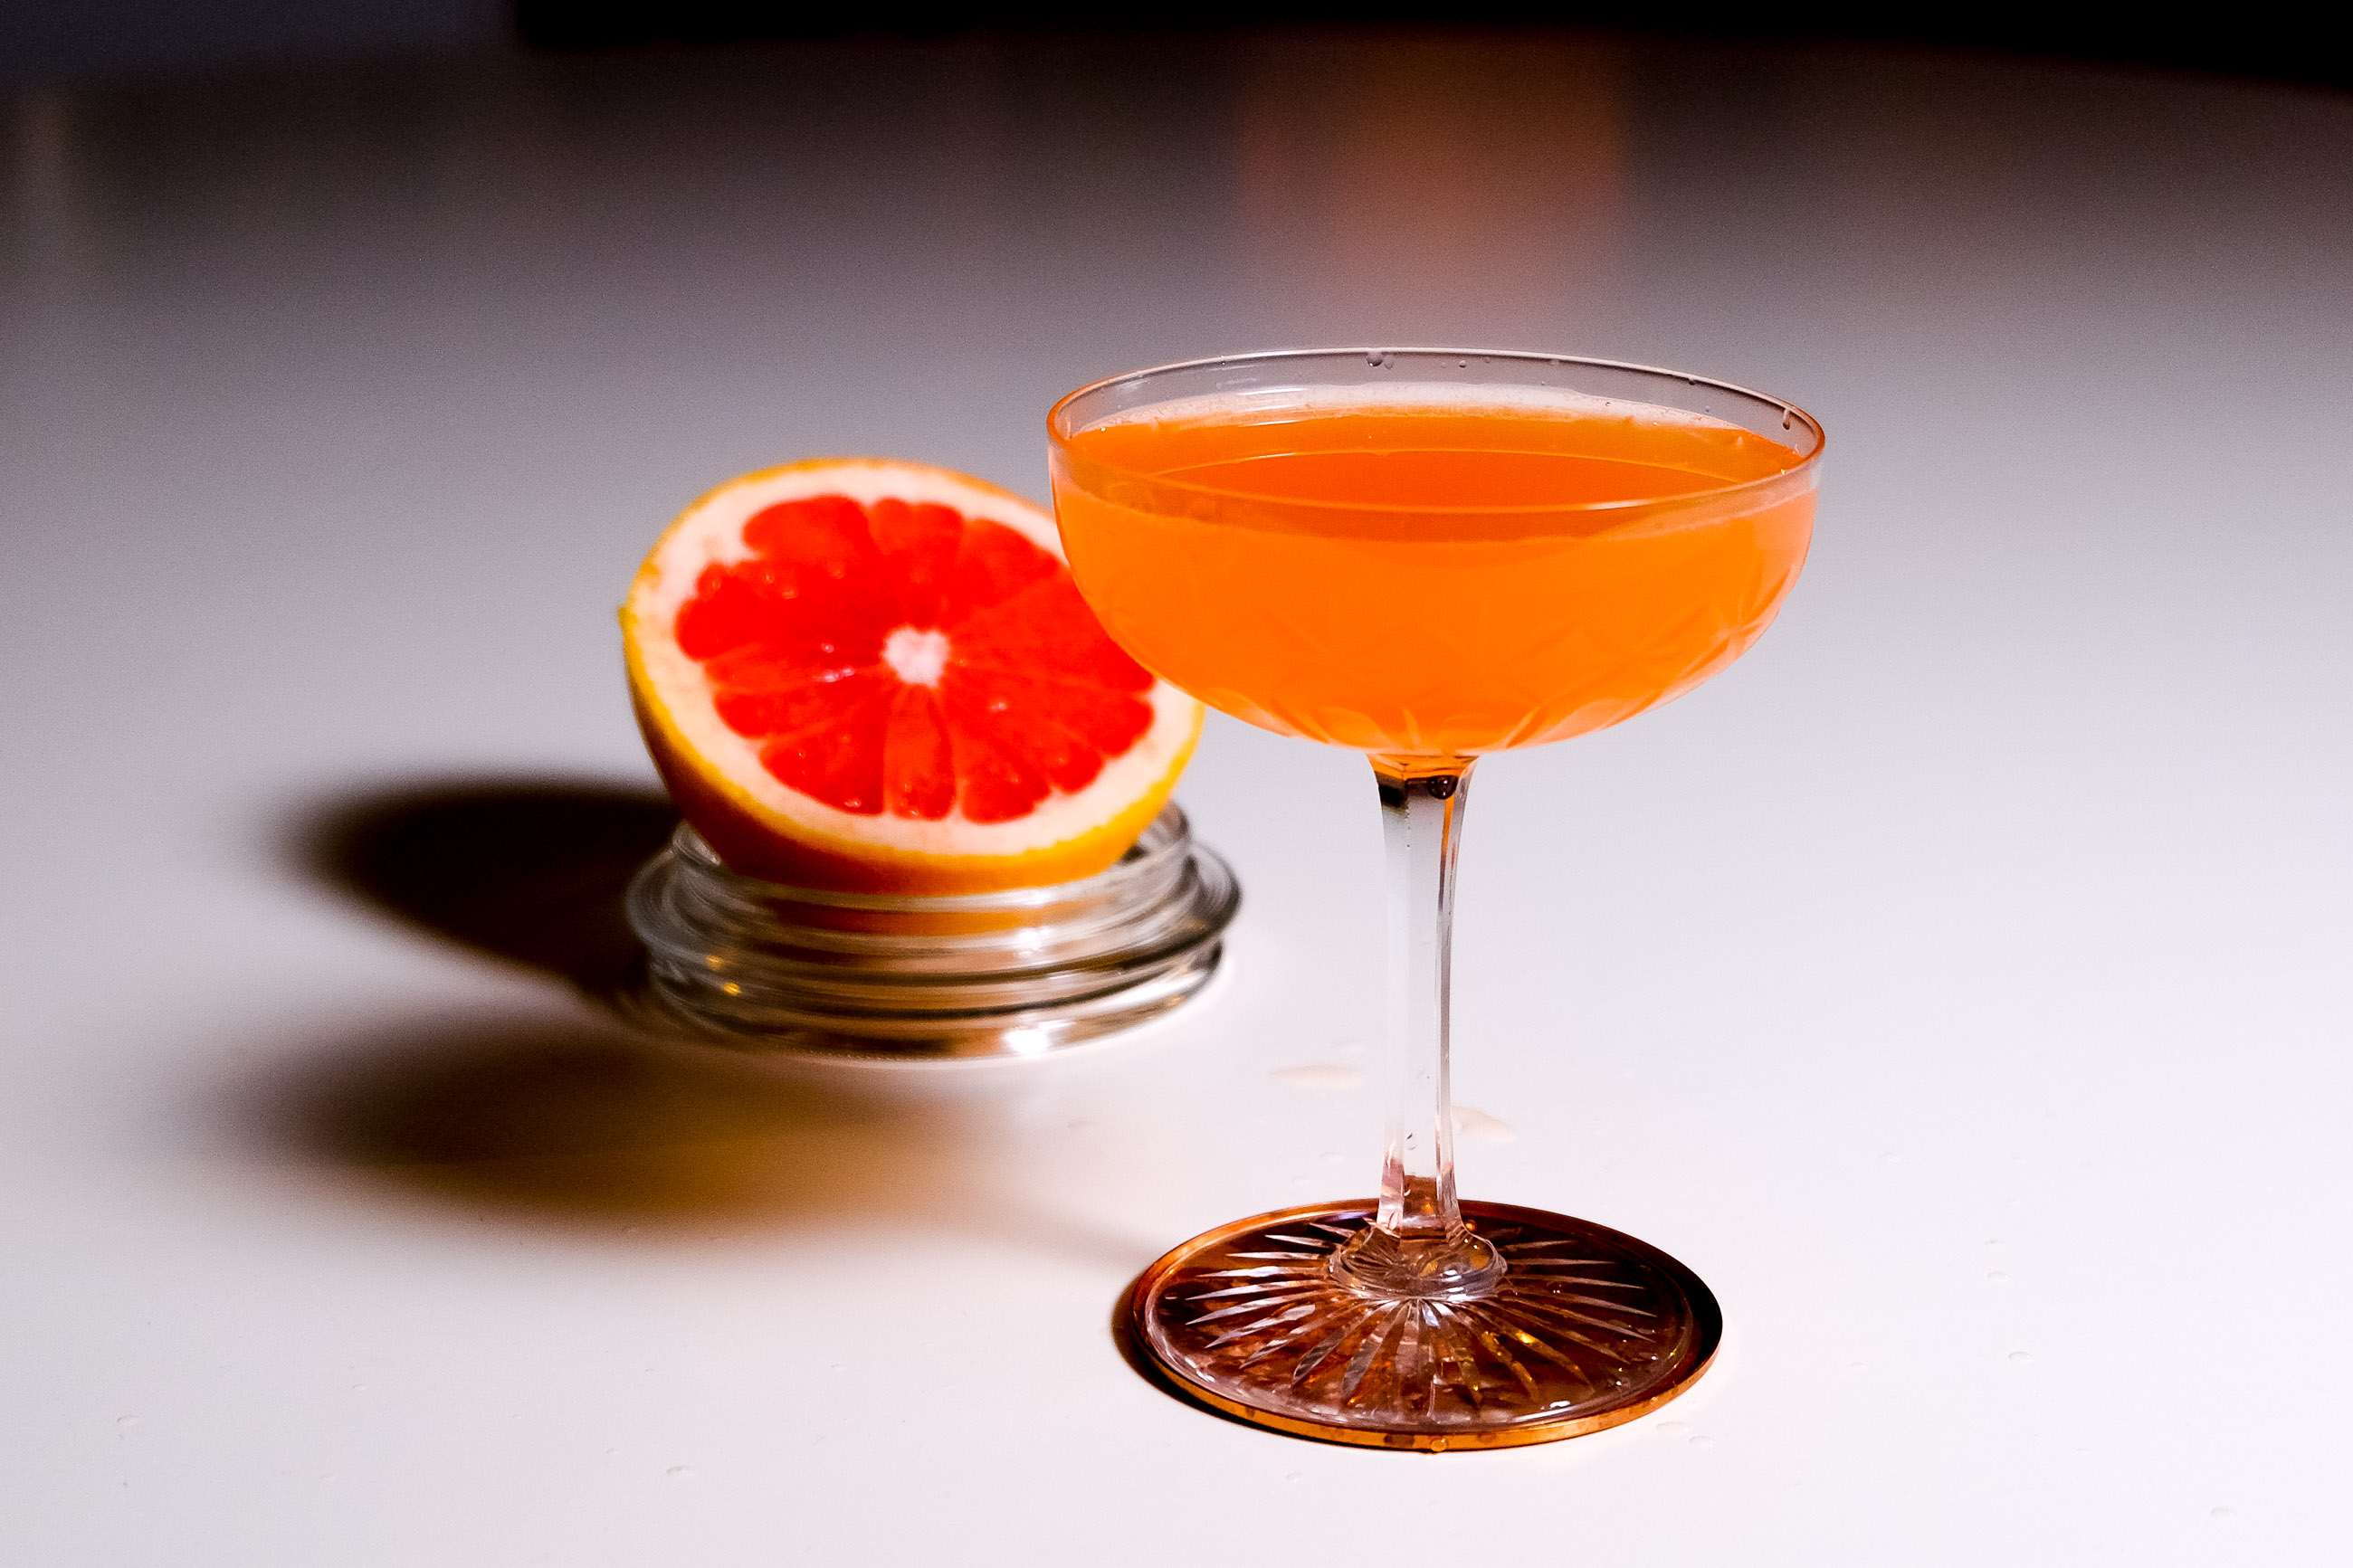 high five 77 400x250 Cocktails